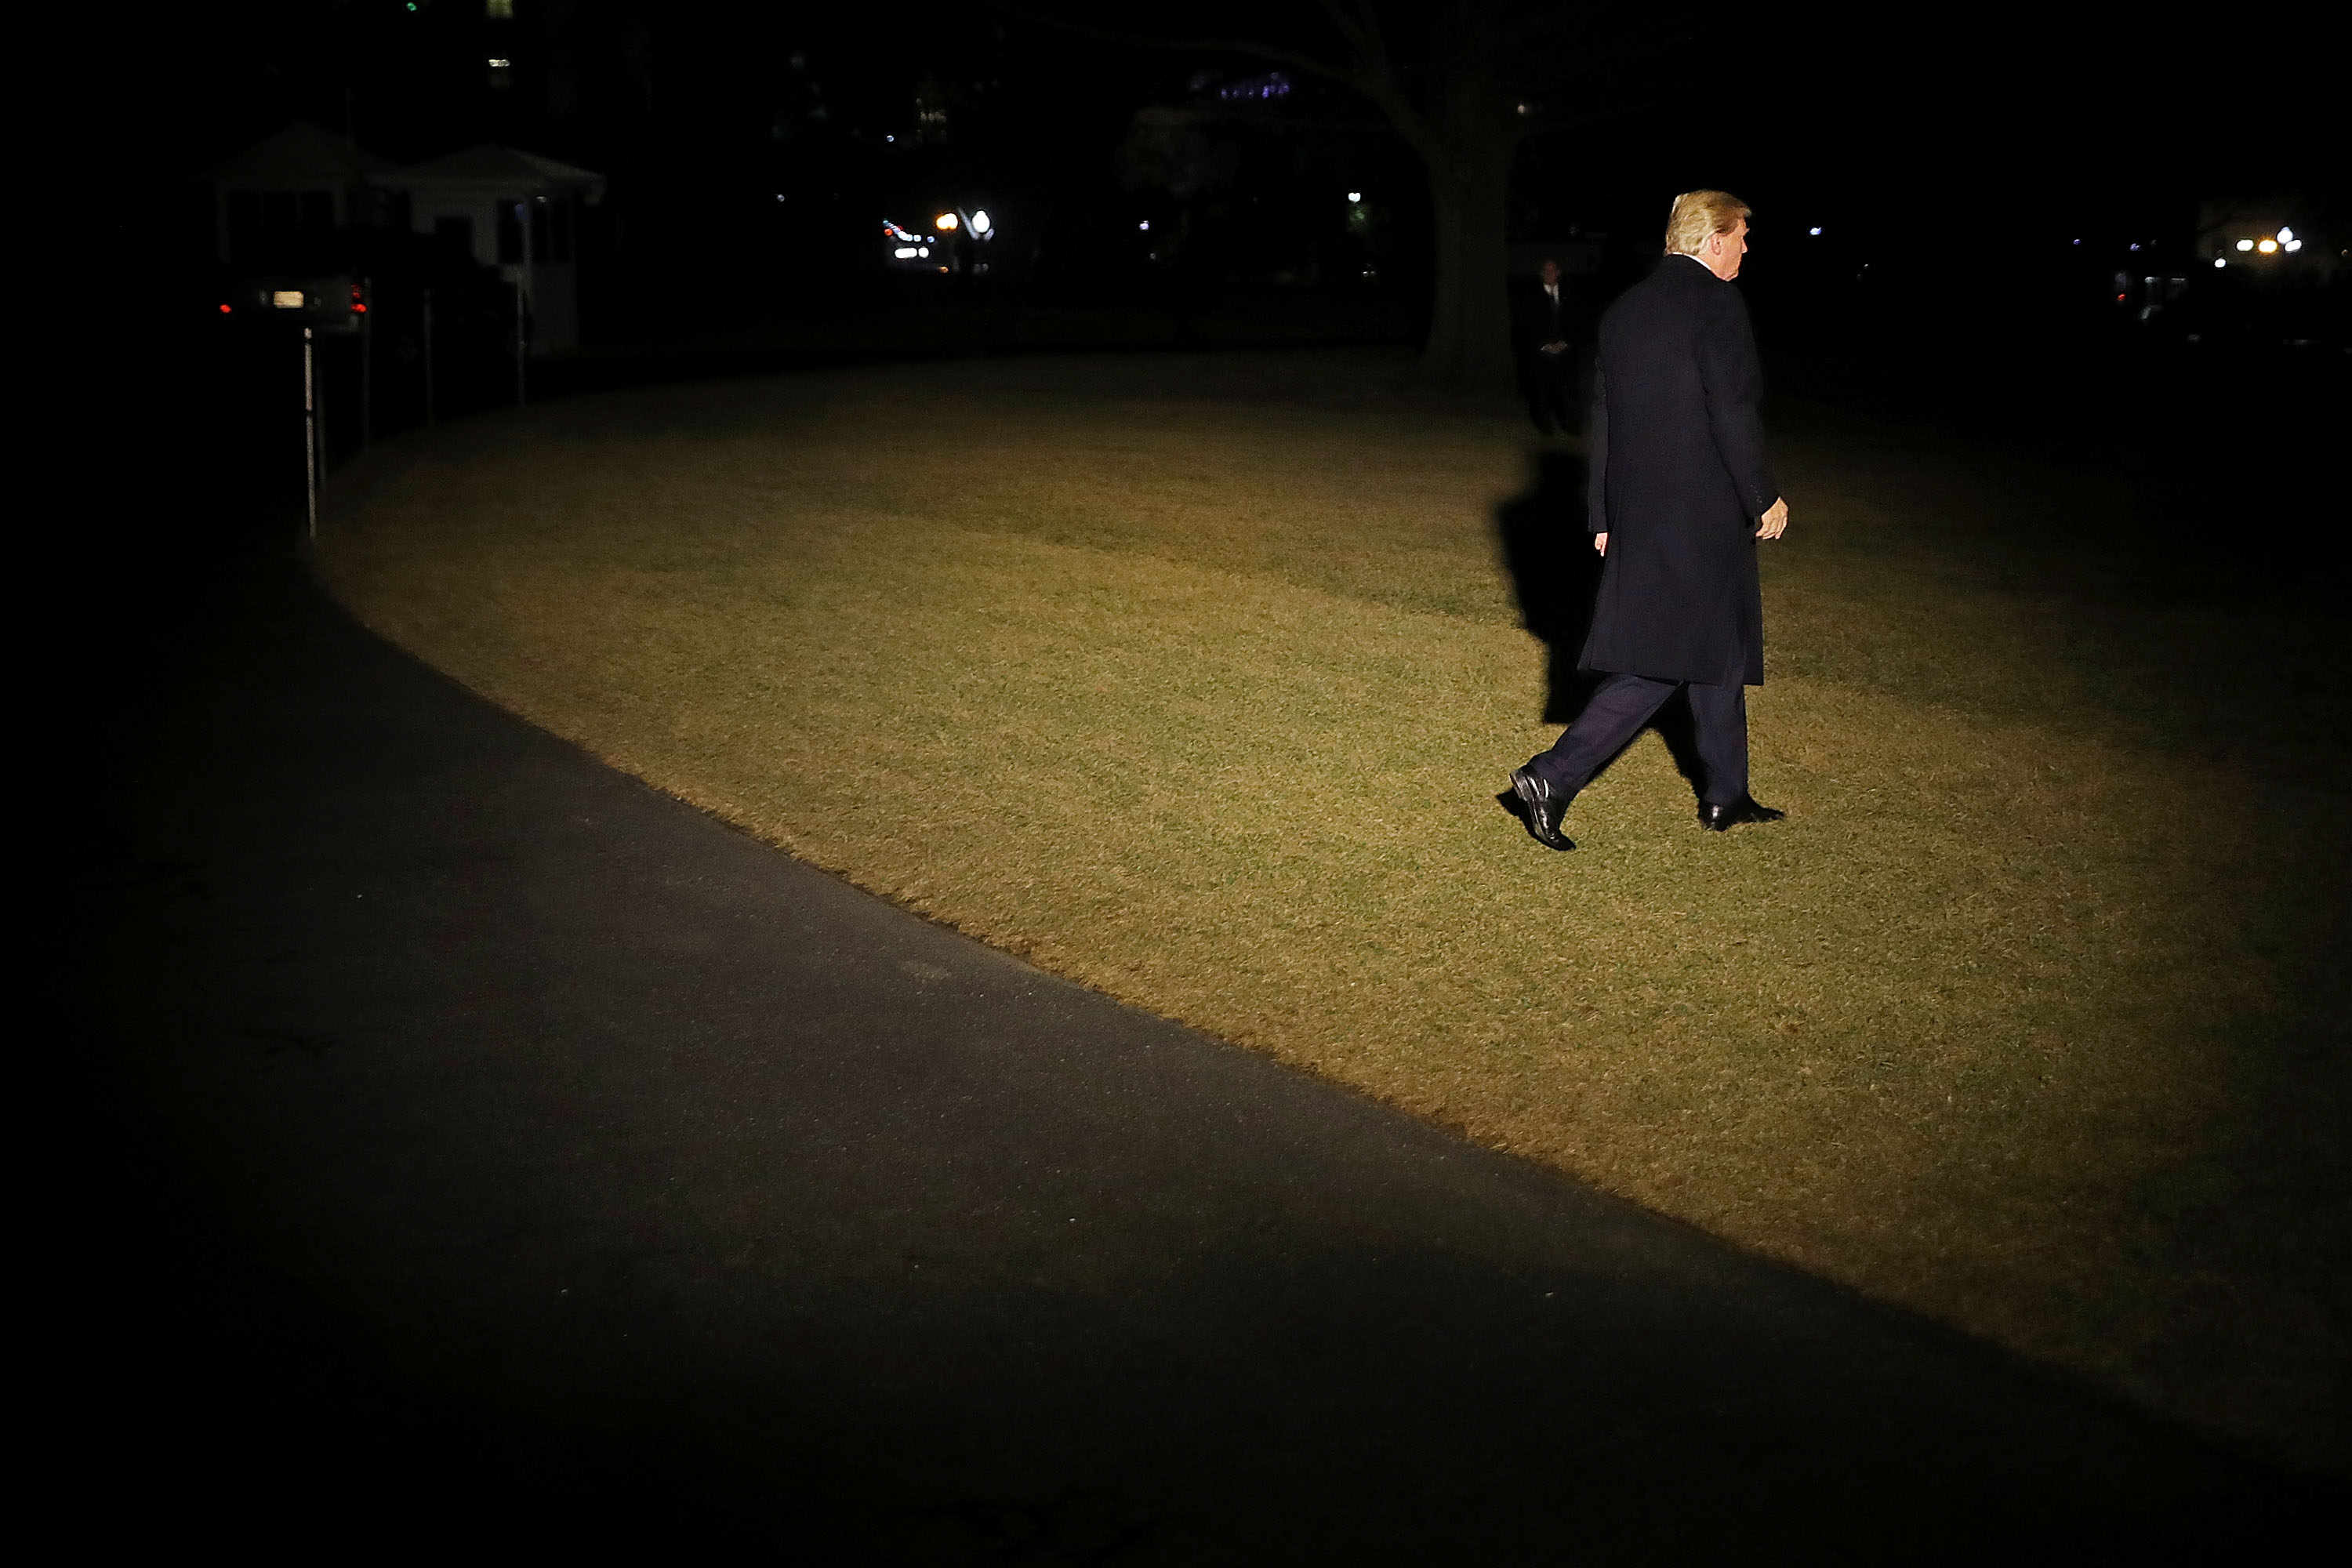 U.S. President Donald Trump leaves the White House for the World Economic Forum in Davos, Switzerland, Jan. 24, 2018 in Washington, D.C.